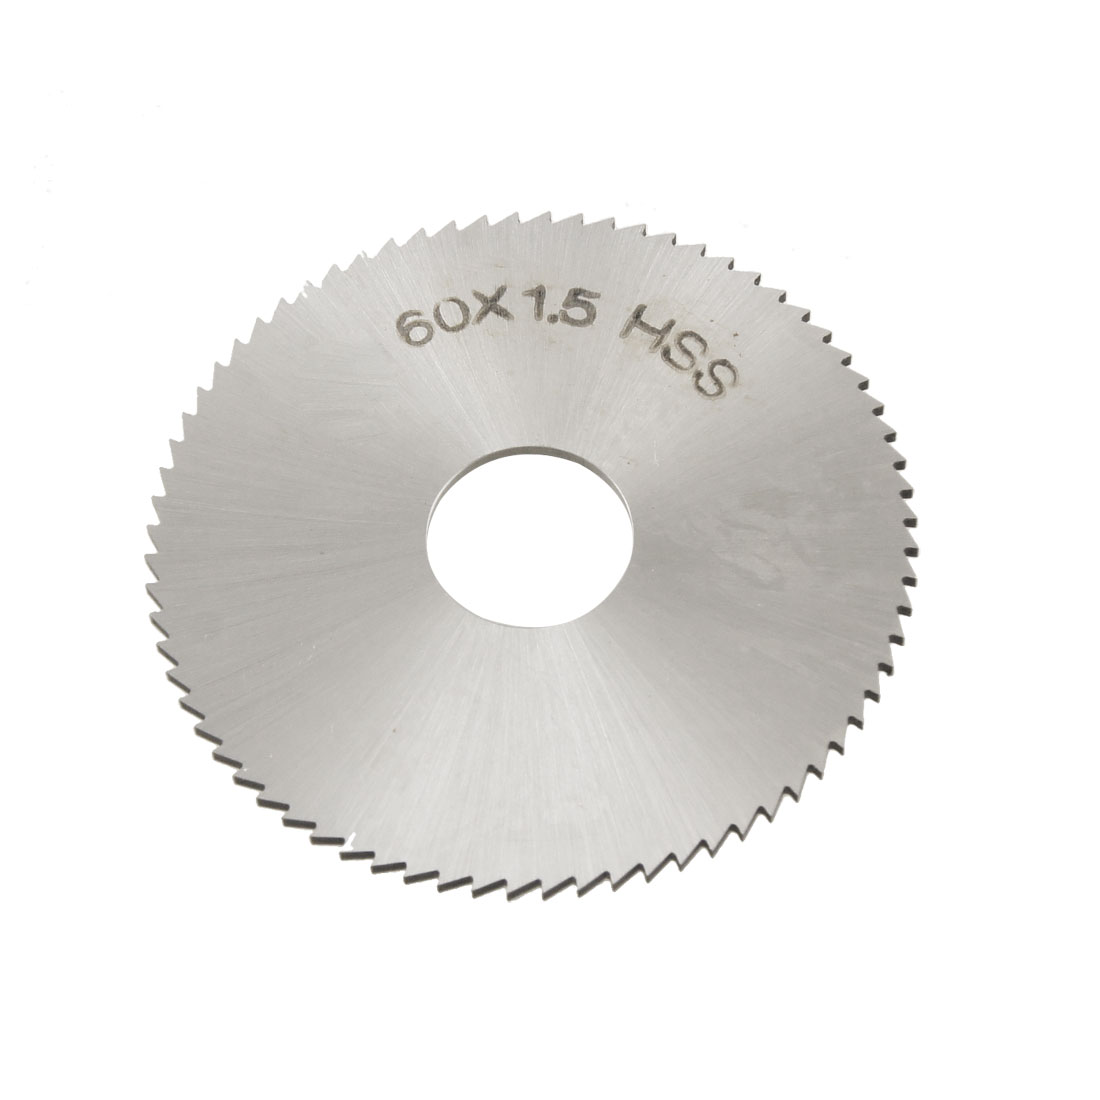 60mm x 1.5mm x 16mm HSS 72T Slitting Saw Blade Cutting Tool